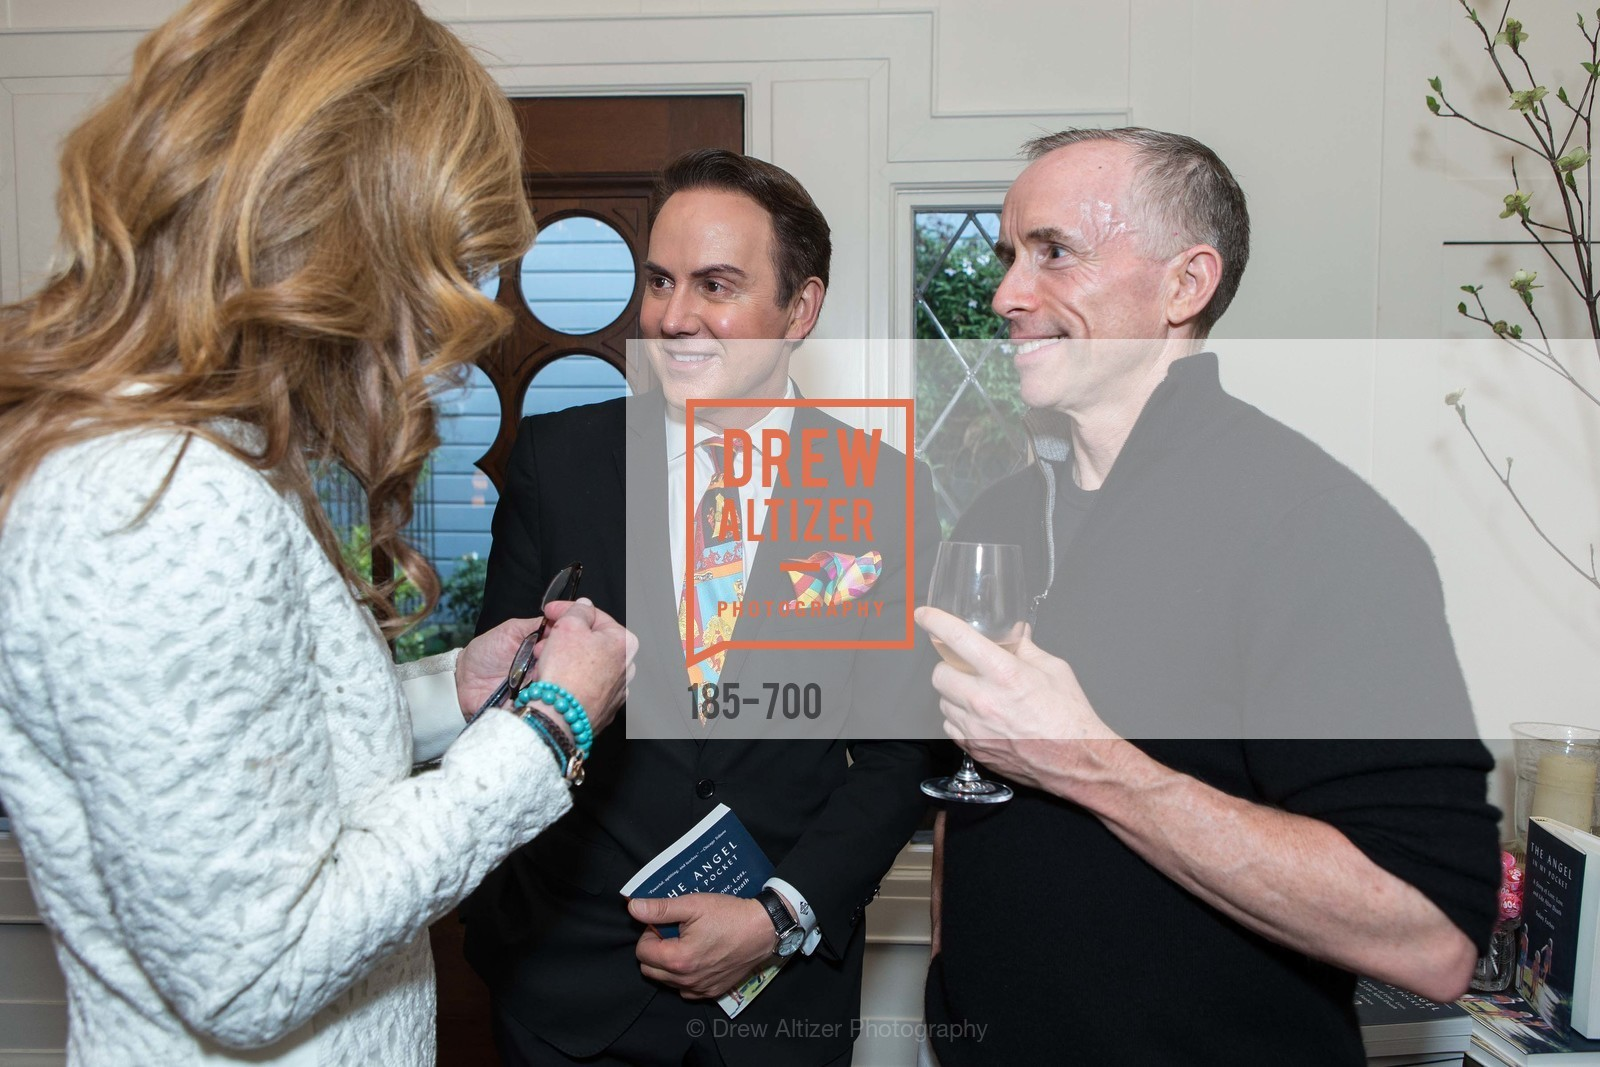 Joel Goodrich, Maurice Kelly, SUKEY FORBES' Book Signing, US, May 6th, 2015,Drew Altizer, Drew Altizer Photography, full-service agency, private events, San Francisco photographer, photographer california